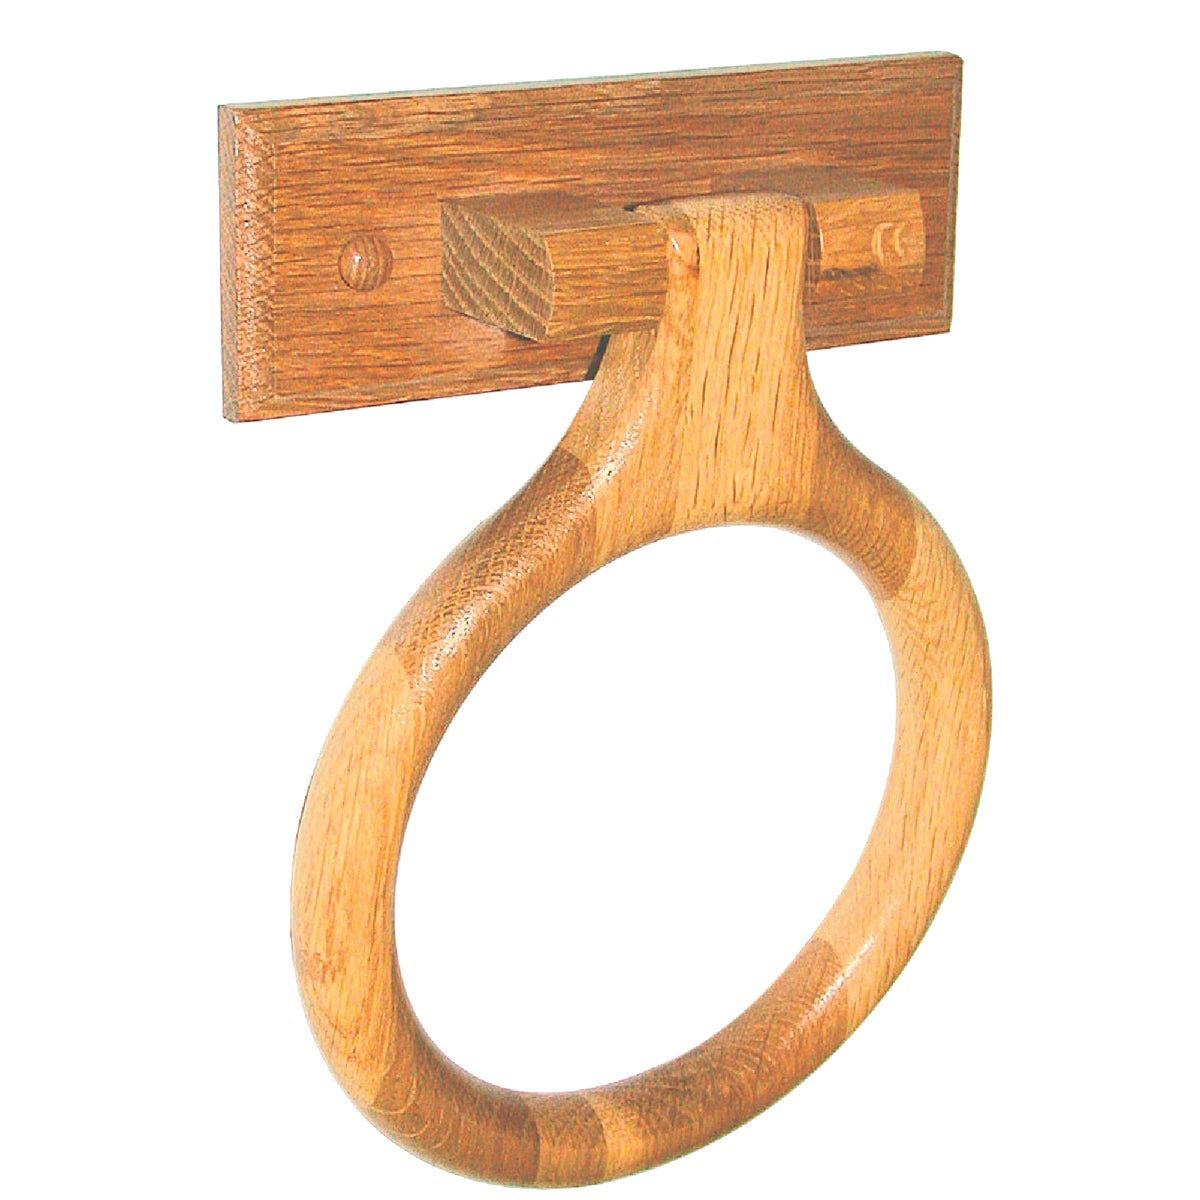 OAK TOWEL RING - B50701 by Do it Best Global Sourcing